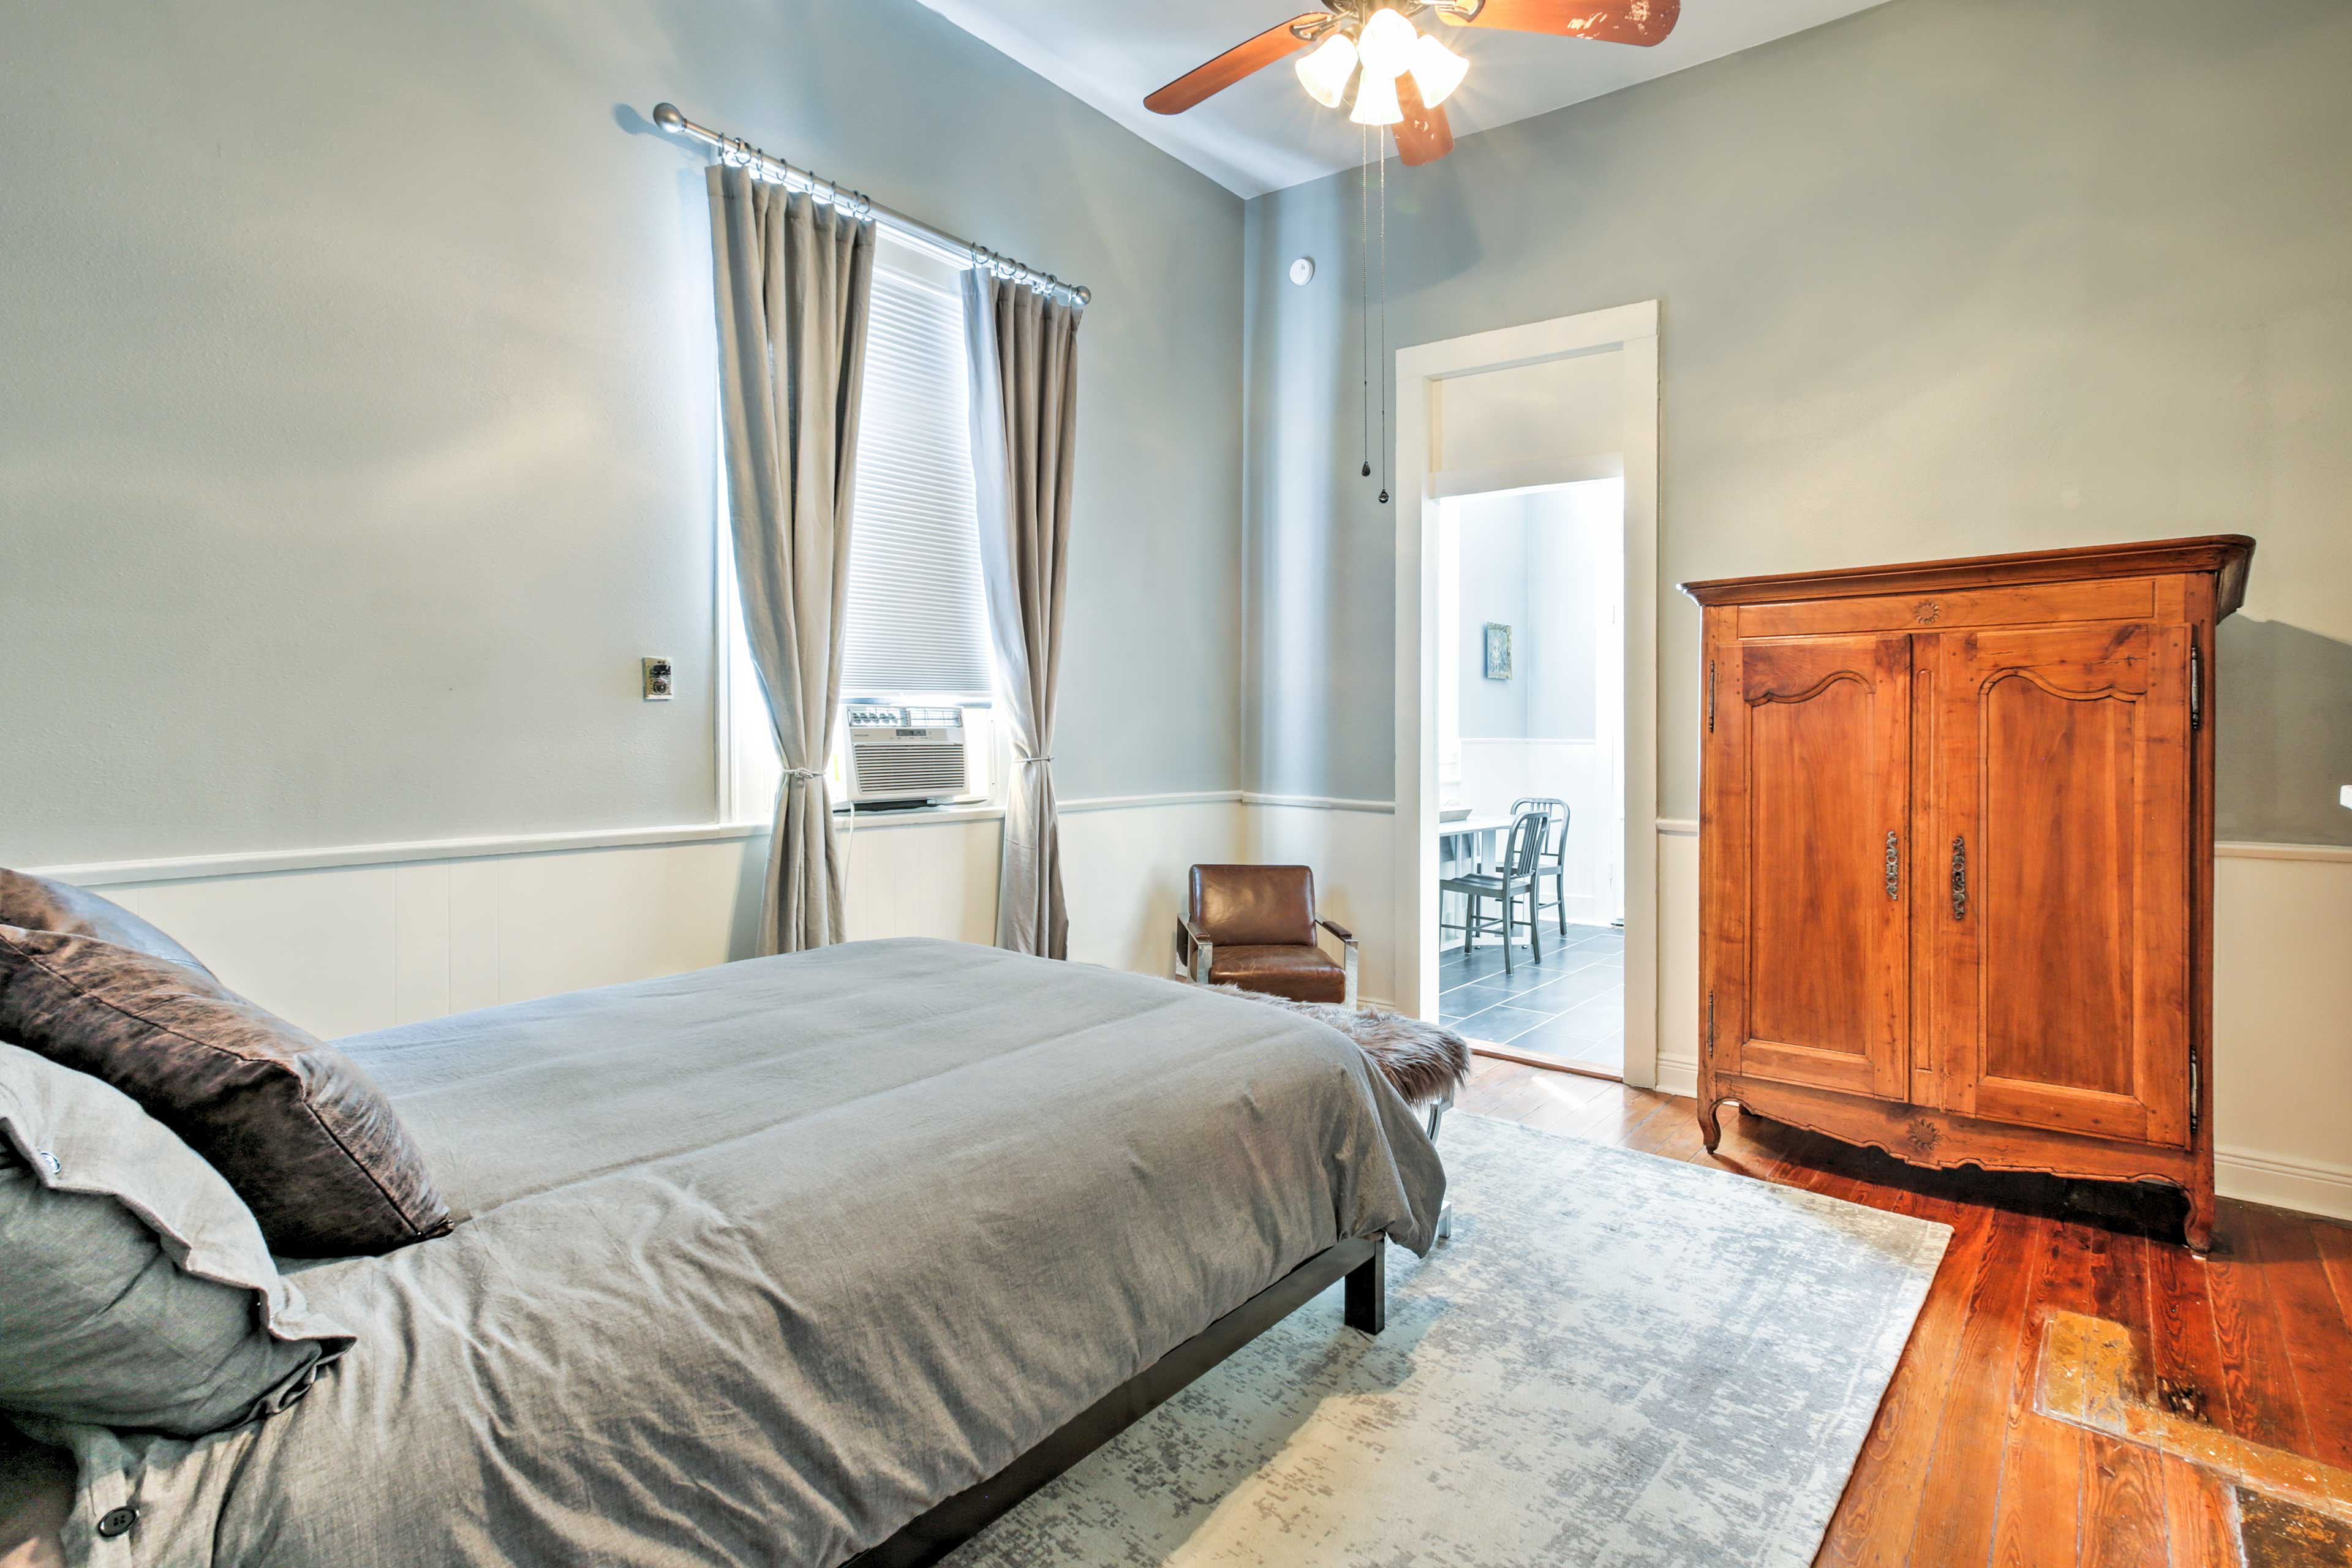 The master bedroom features a dresser and armoire to provide plenty of storage space.